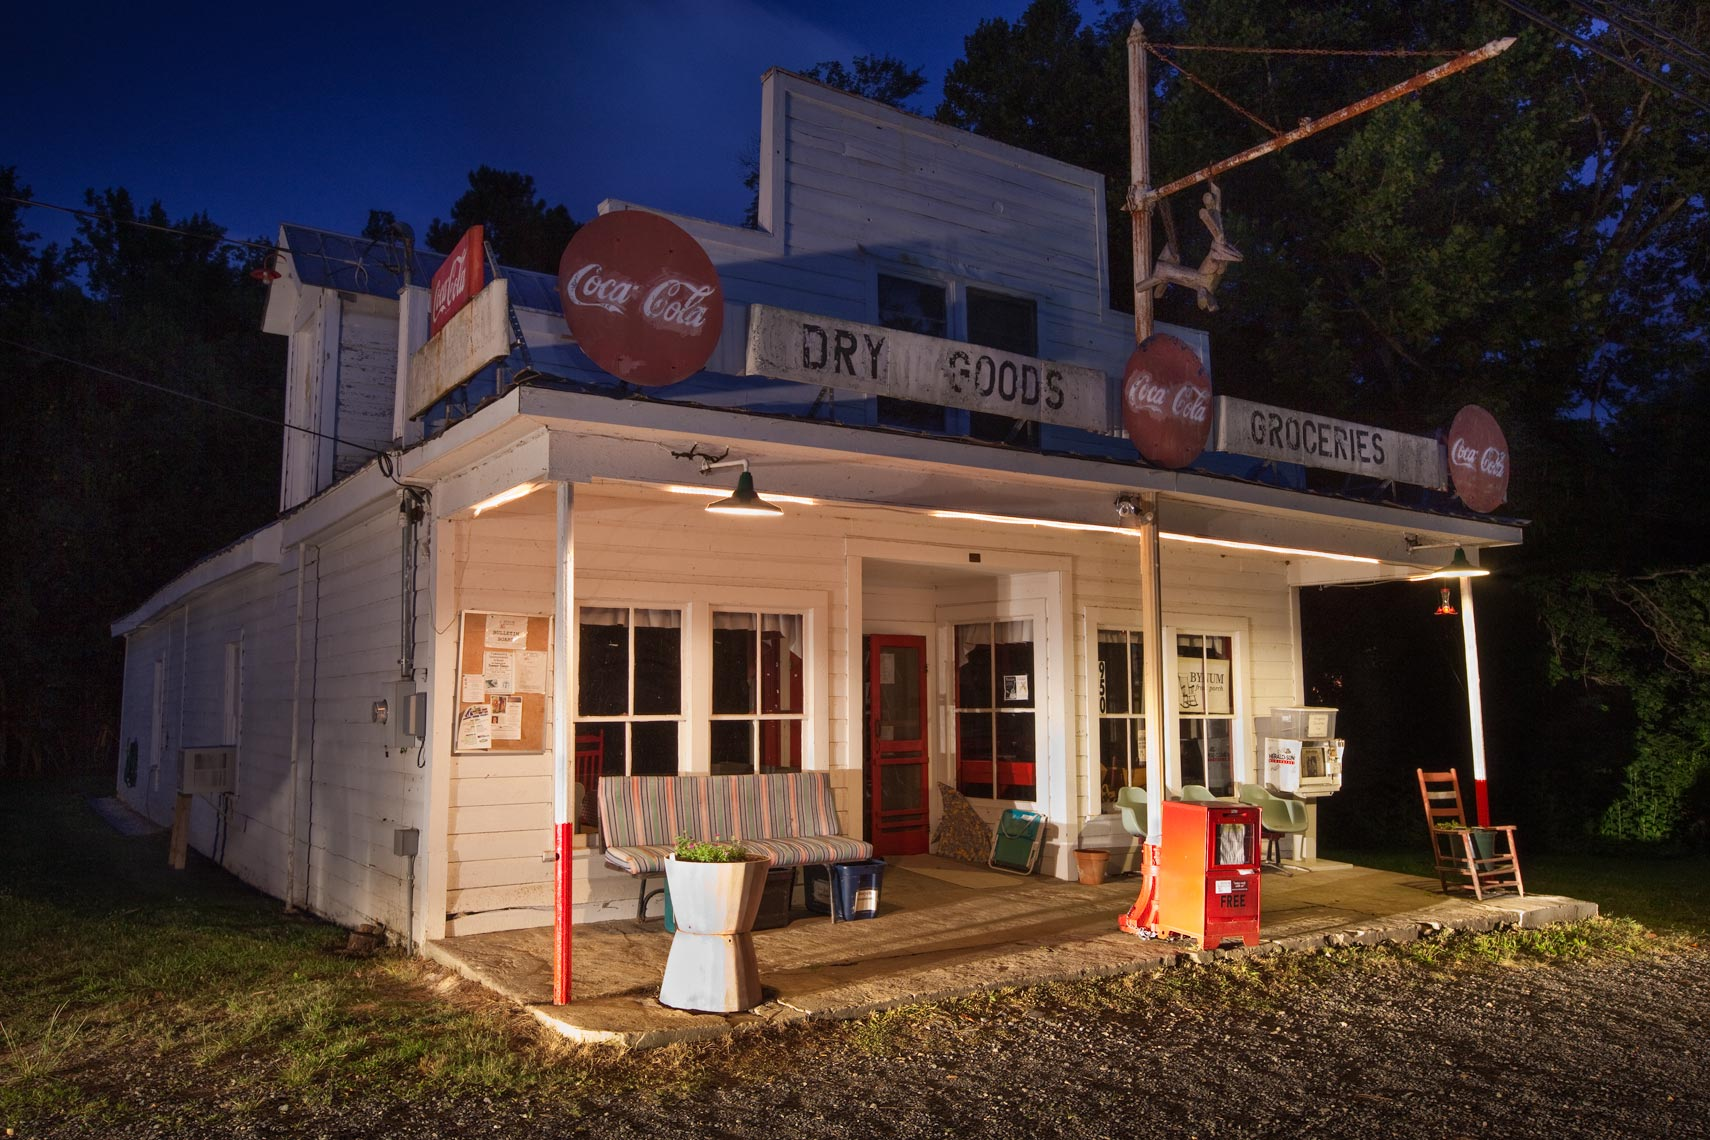 Old country store at night, Mebane, NC